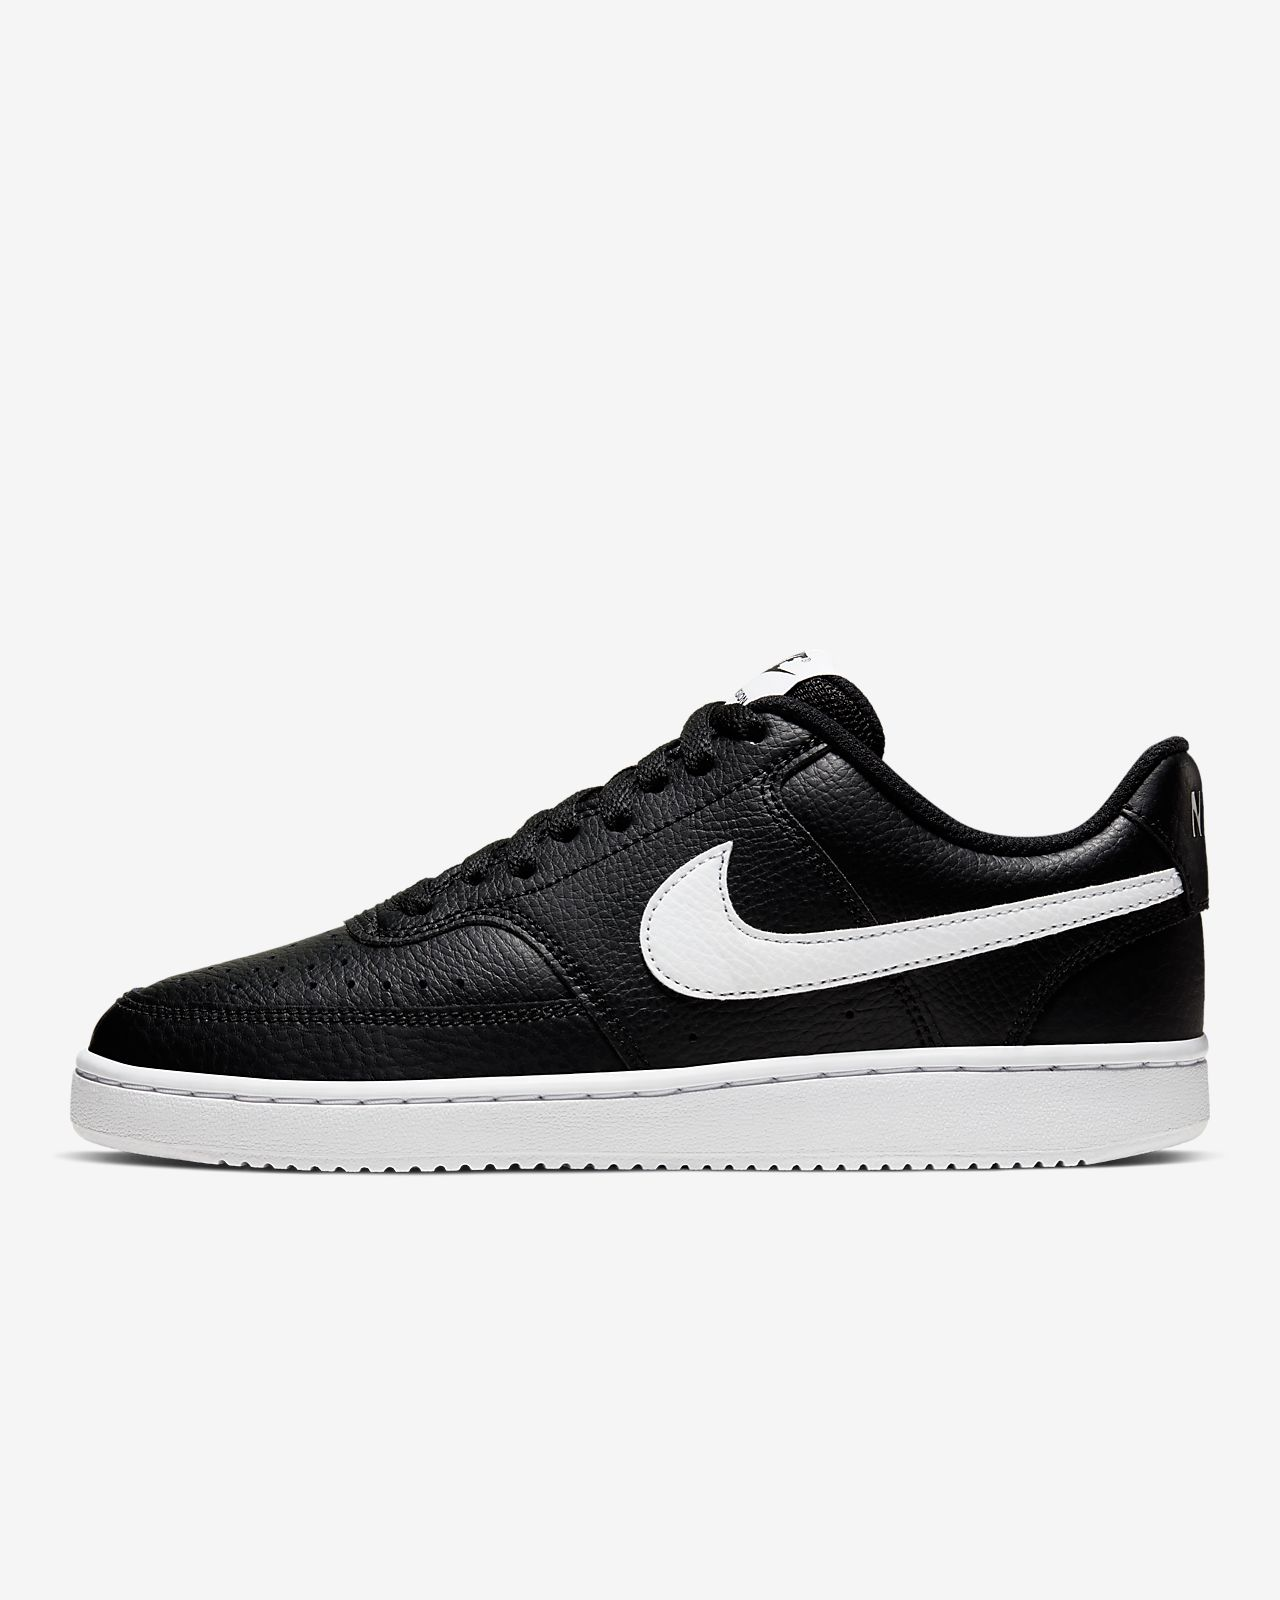 NikeCourt Vision Low Damenschuh